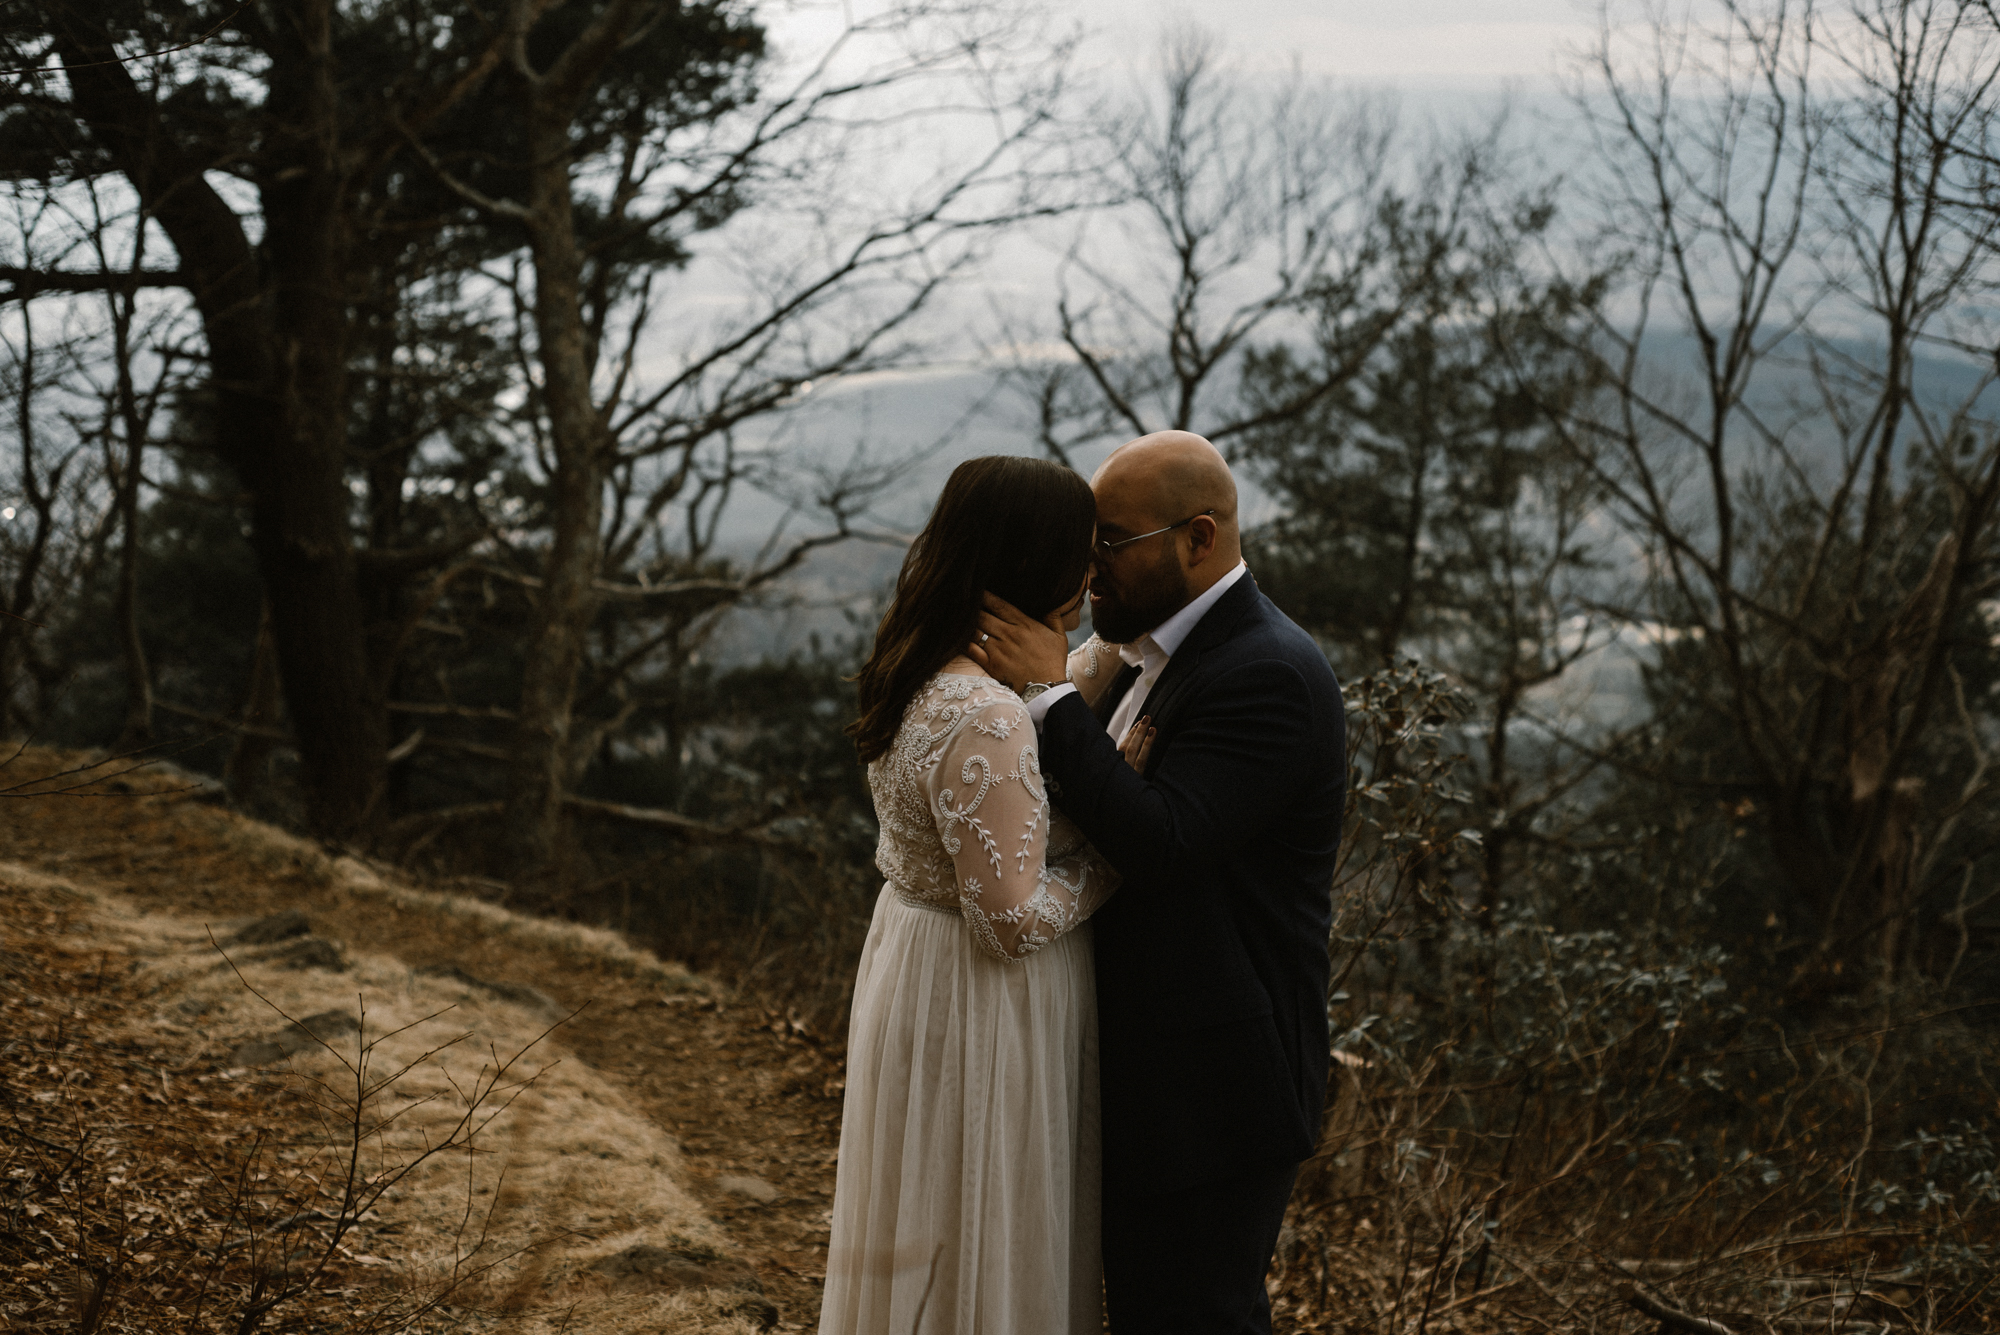 Emma and Jeddah - Intimate Luray Wedding - Shenandoah National Park Wedding - Adventure Elopement in Virginia - Shenandoah National Park Elopement_70.jpg